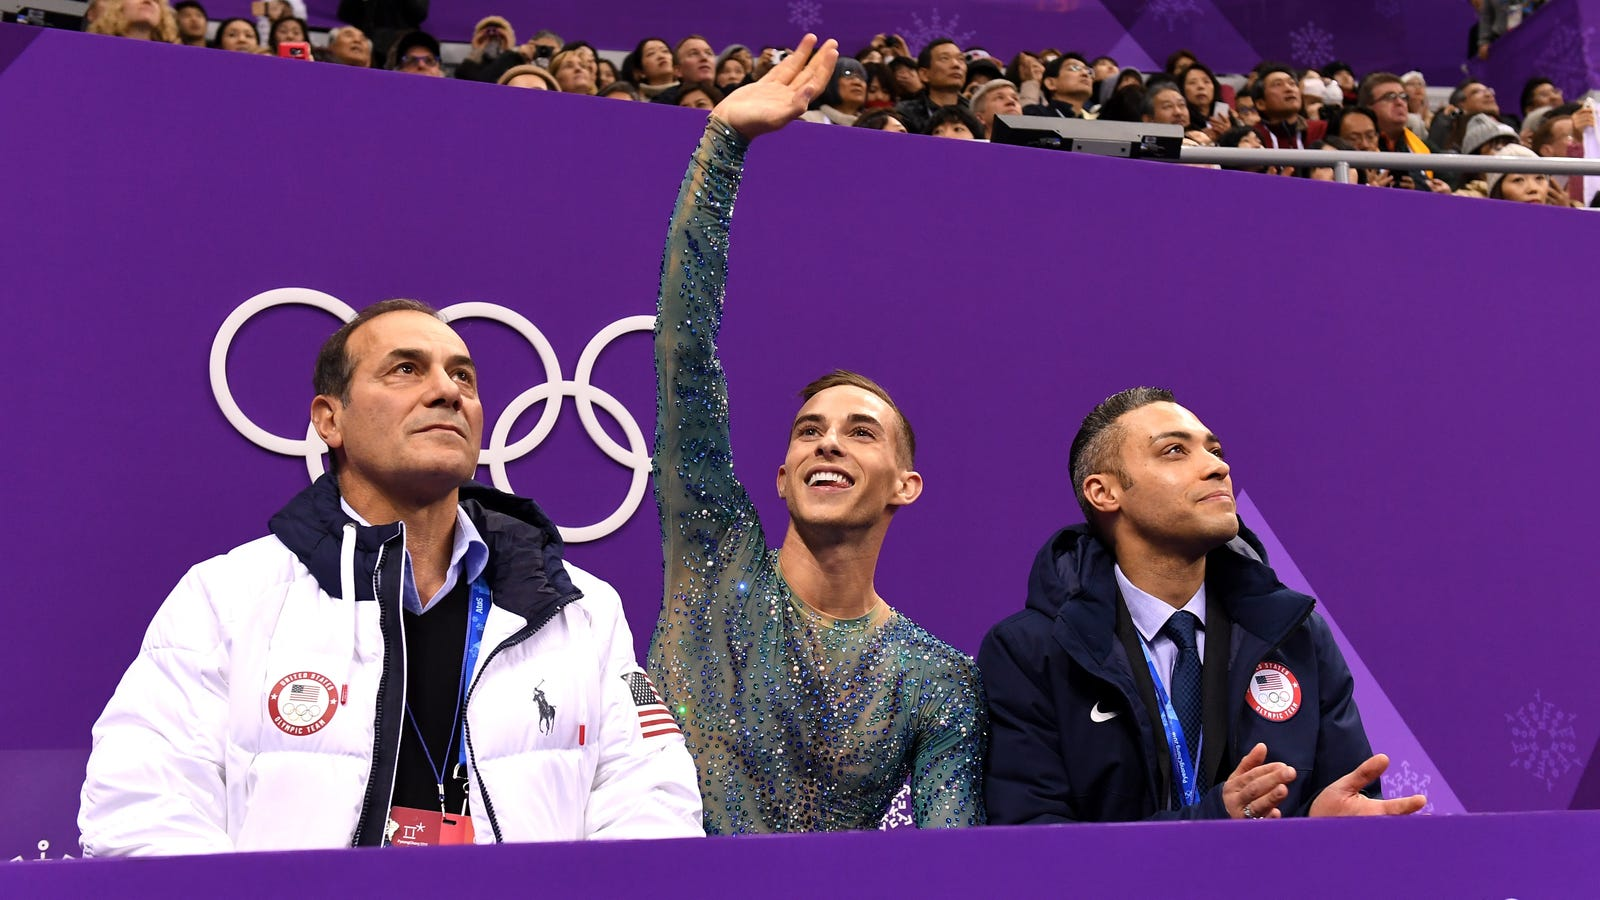 Effective Right Now Immediately, Adam Rippon Is Assuming His Rightful Place on NBC